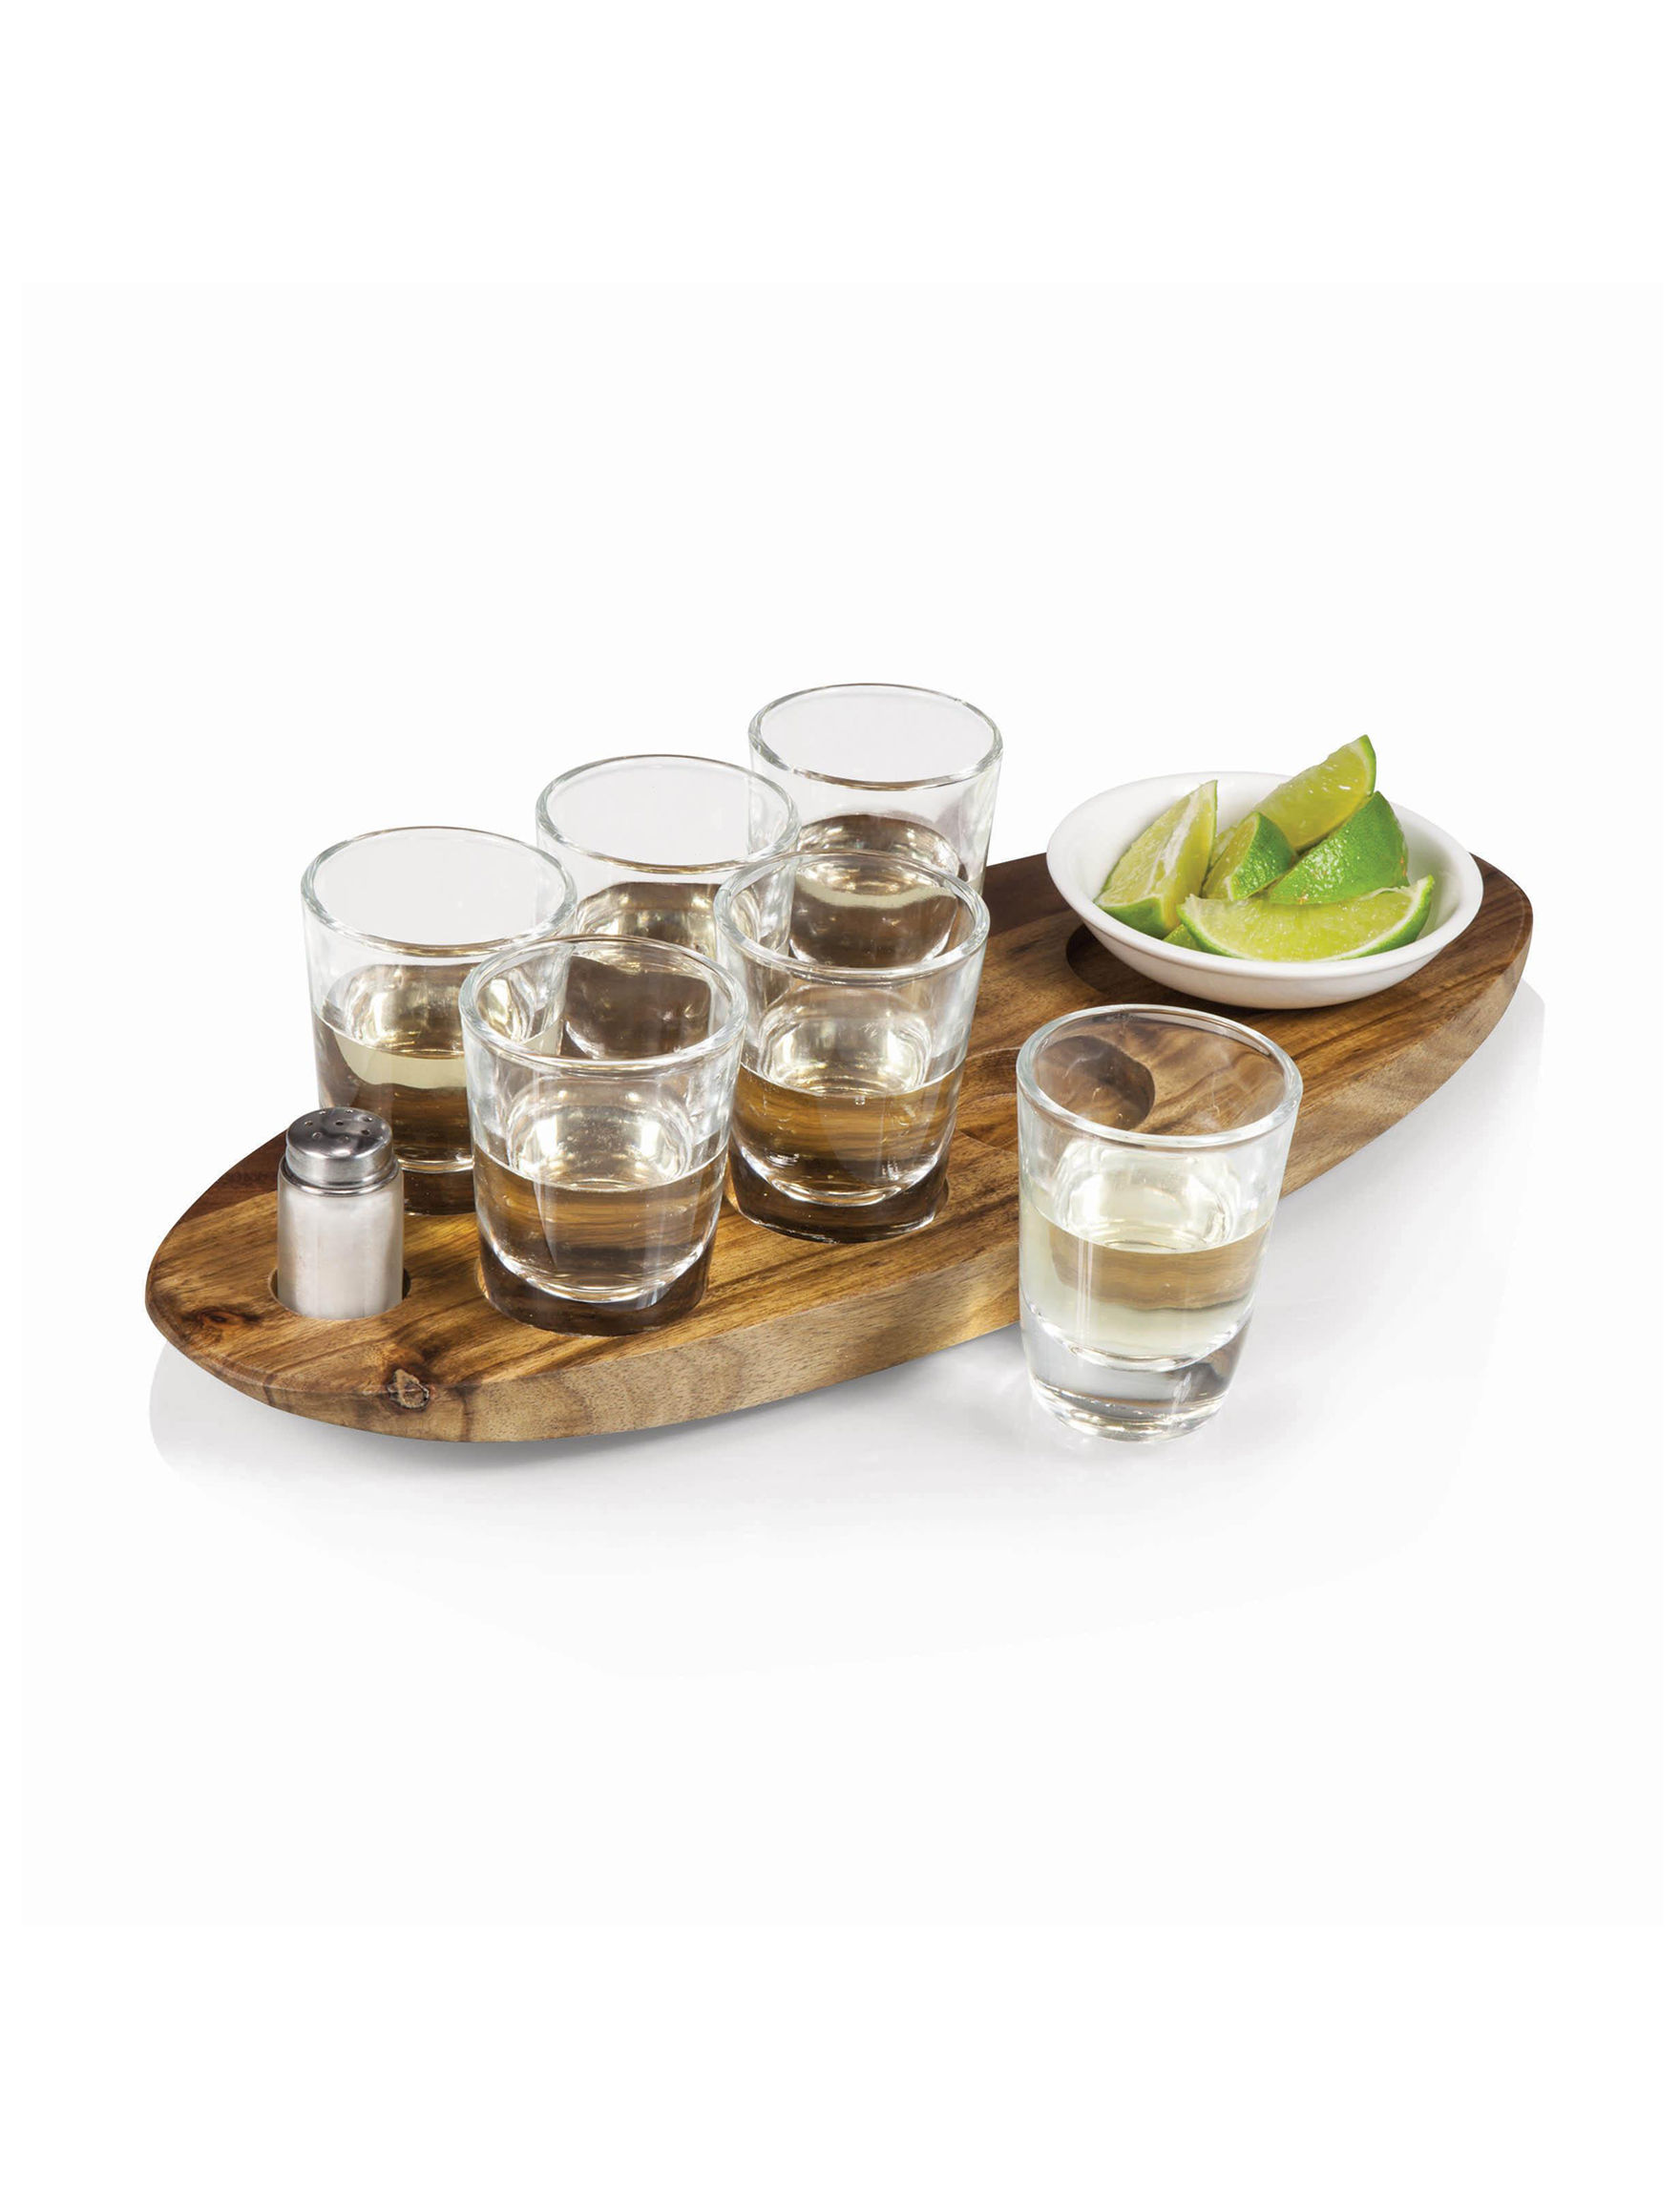 Picnic Time Natural Cocktail & Liquor Glasses Drinkware Sets Wine & Bar Tools Bar Accessories Drinkware